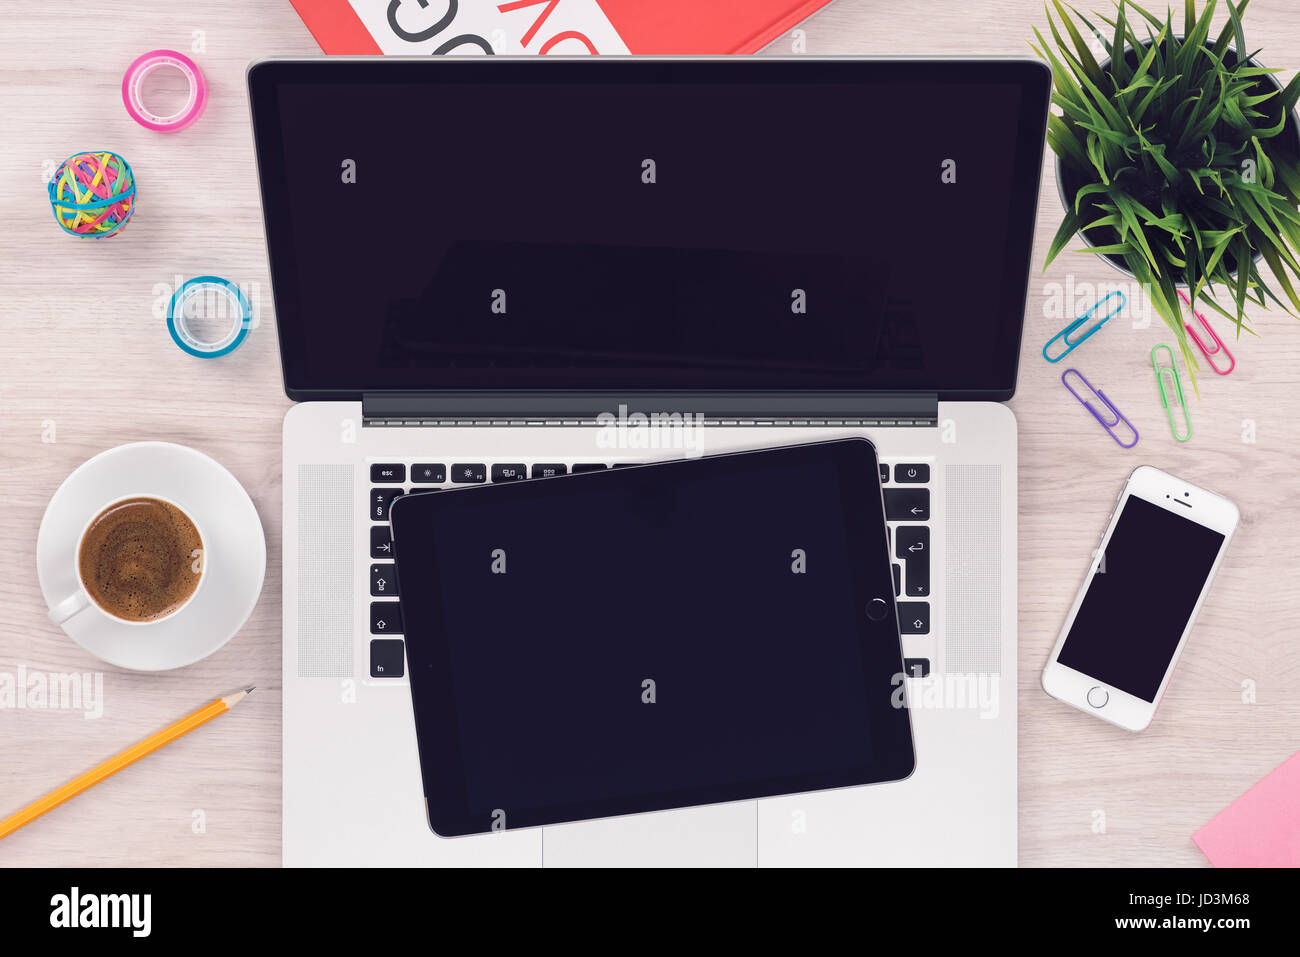 Top view flat lay workspace mockup with open laptop tablet pc and smartphone on office wooden desk - Stock Image